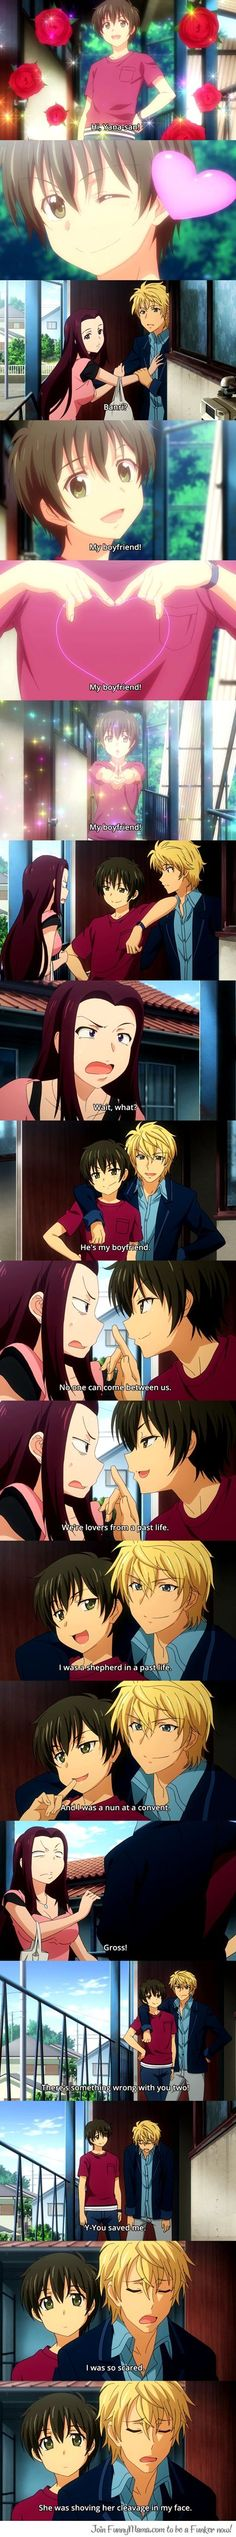 Puhahahaha!! What anime is this???? I need to see this like yesterday! I have physically died!! So funny :'D